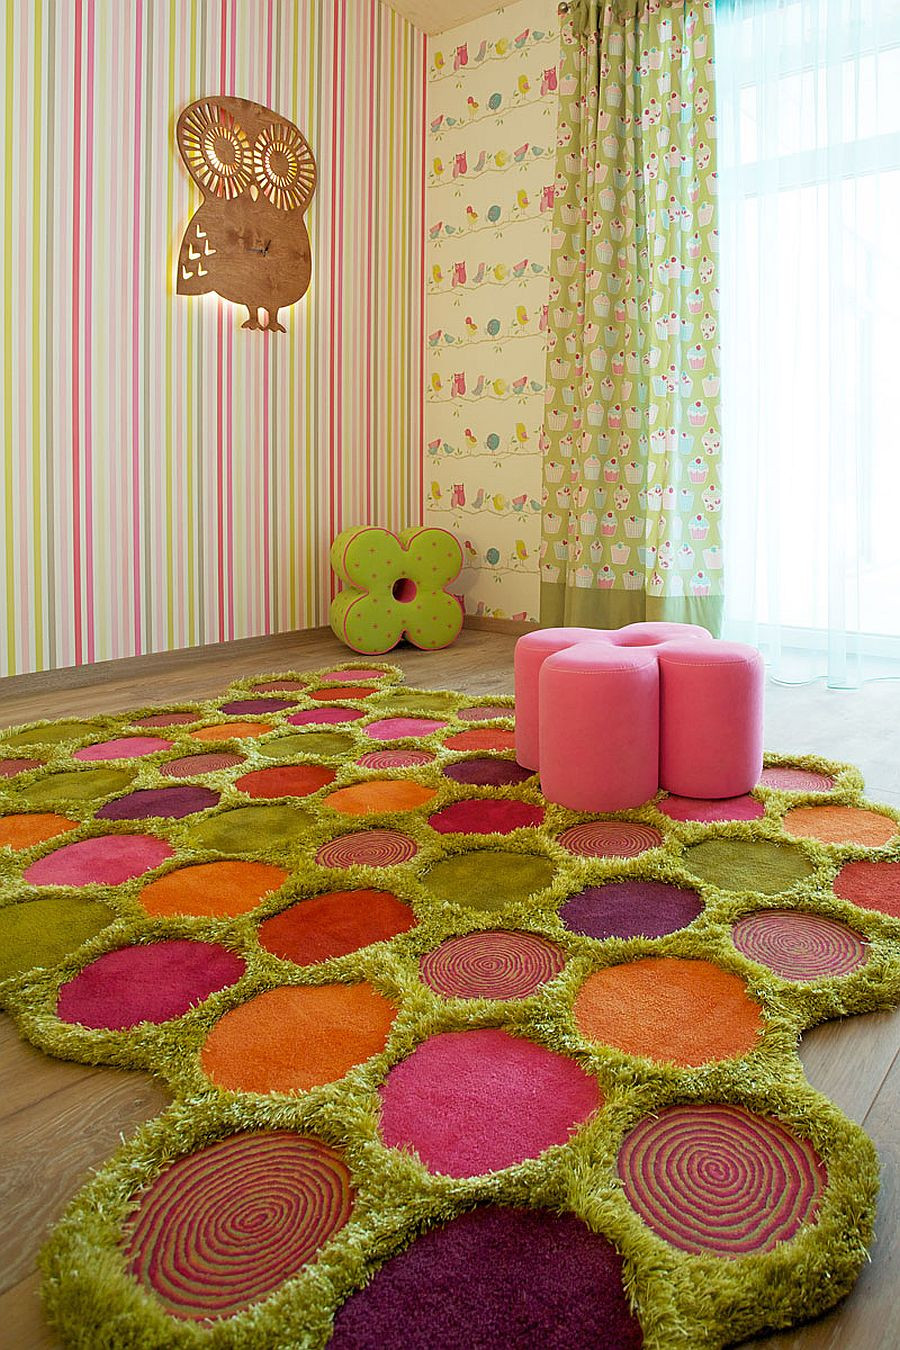 Carpet Designs for Kids Colorful Zest 25 Eye Catching Rug Ideas for Kids' Rooms